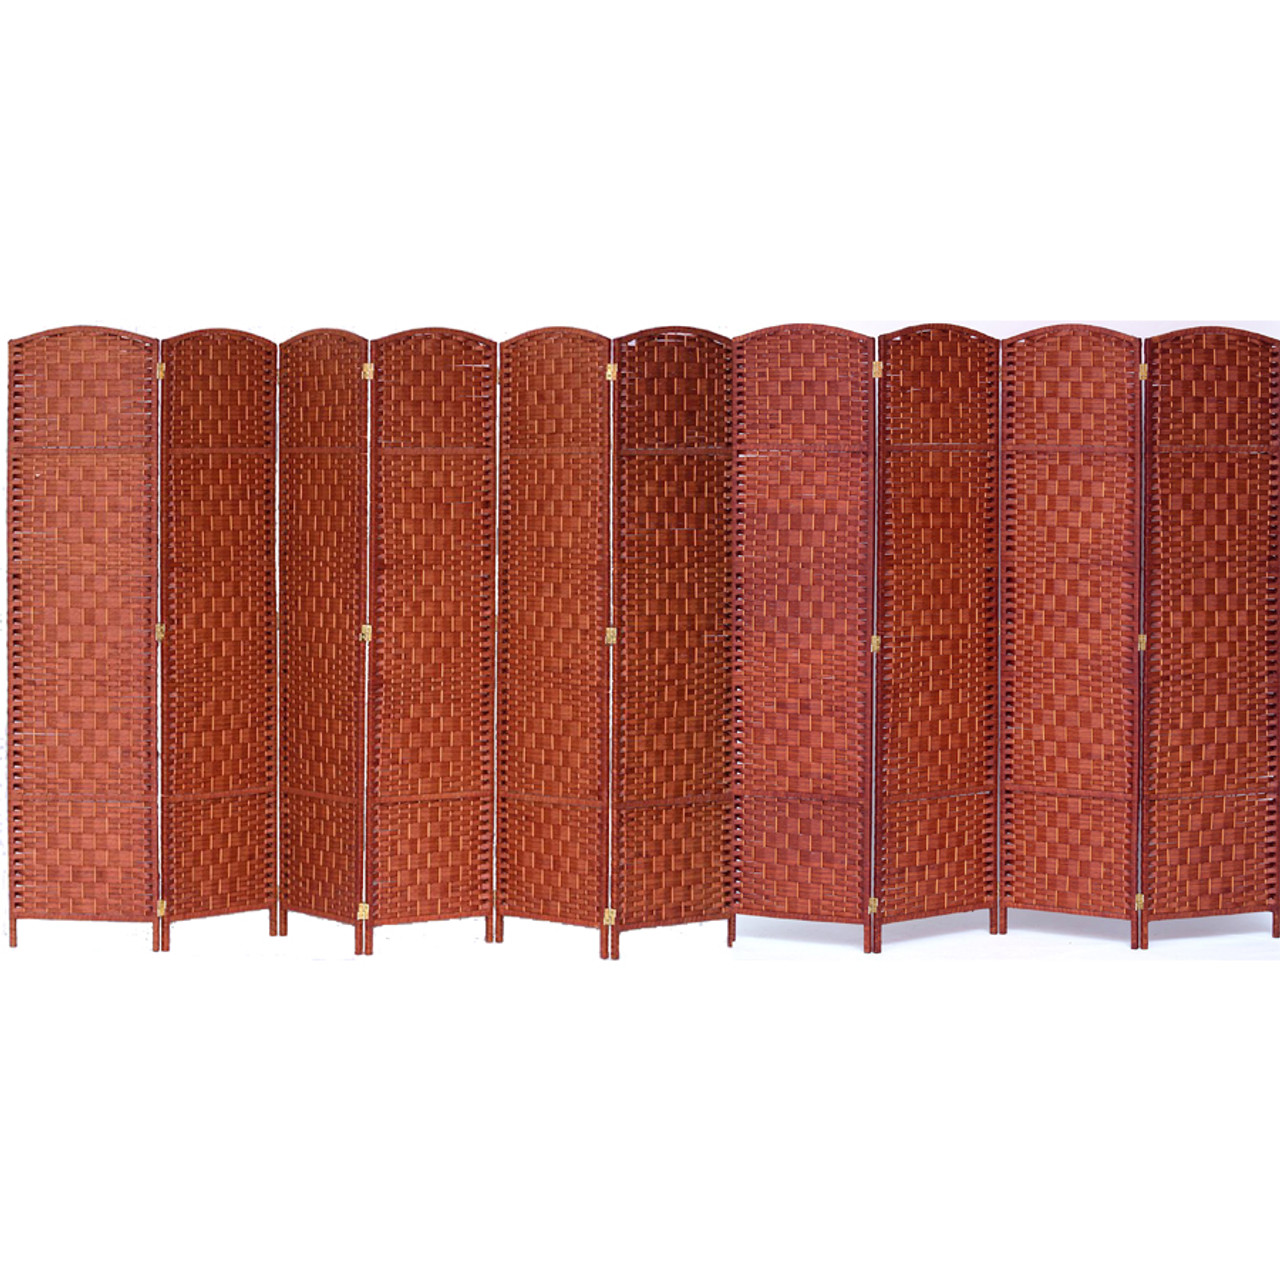 10 Panels Room Divider, Privacy Partition Screen Bamboo Woven Panel